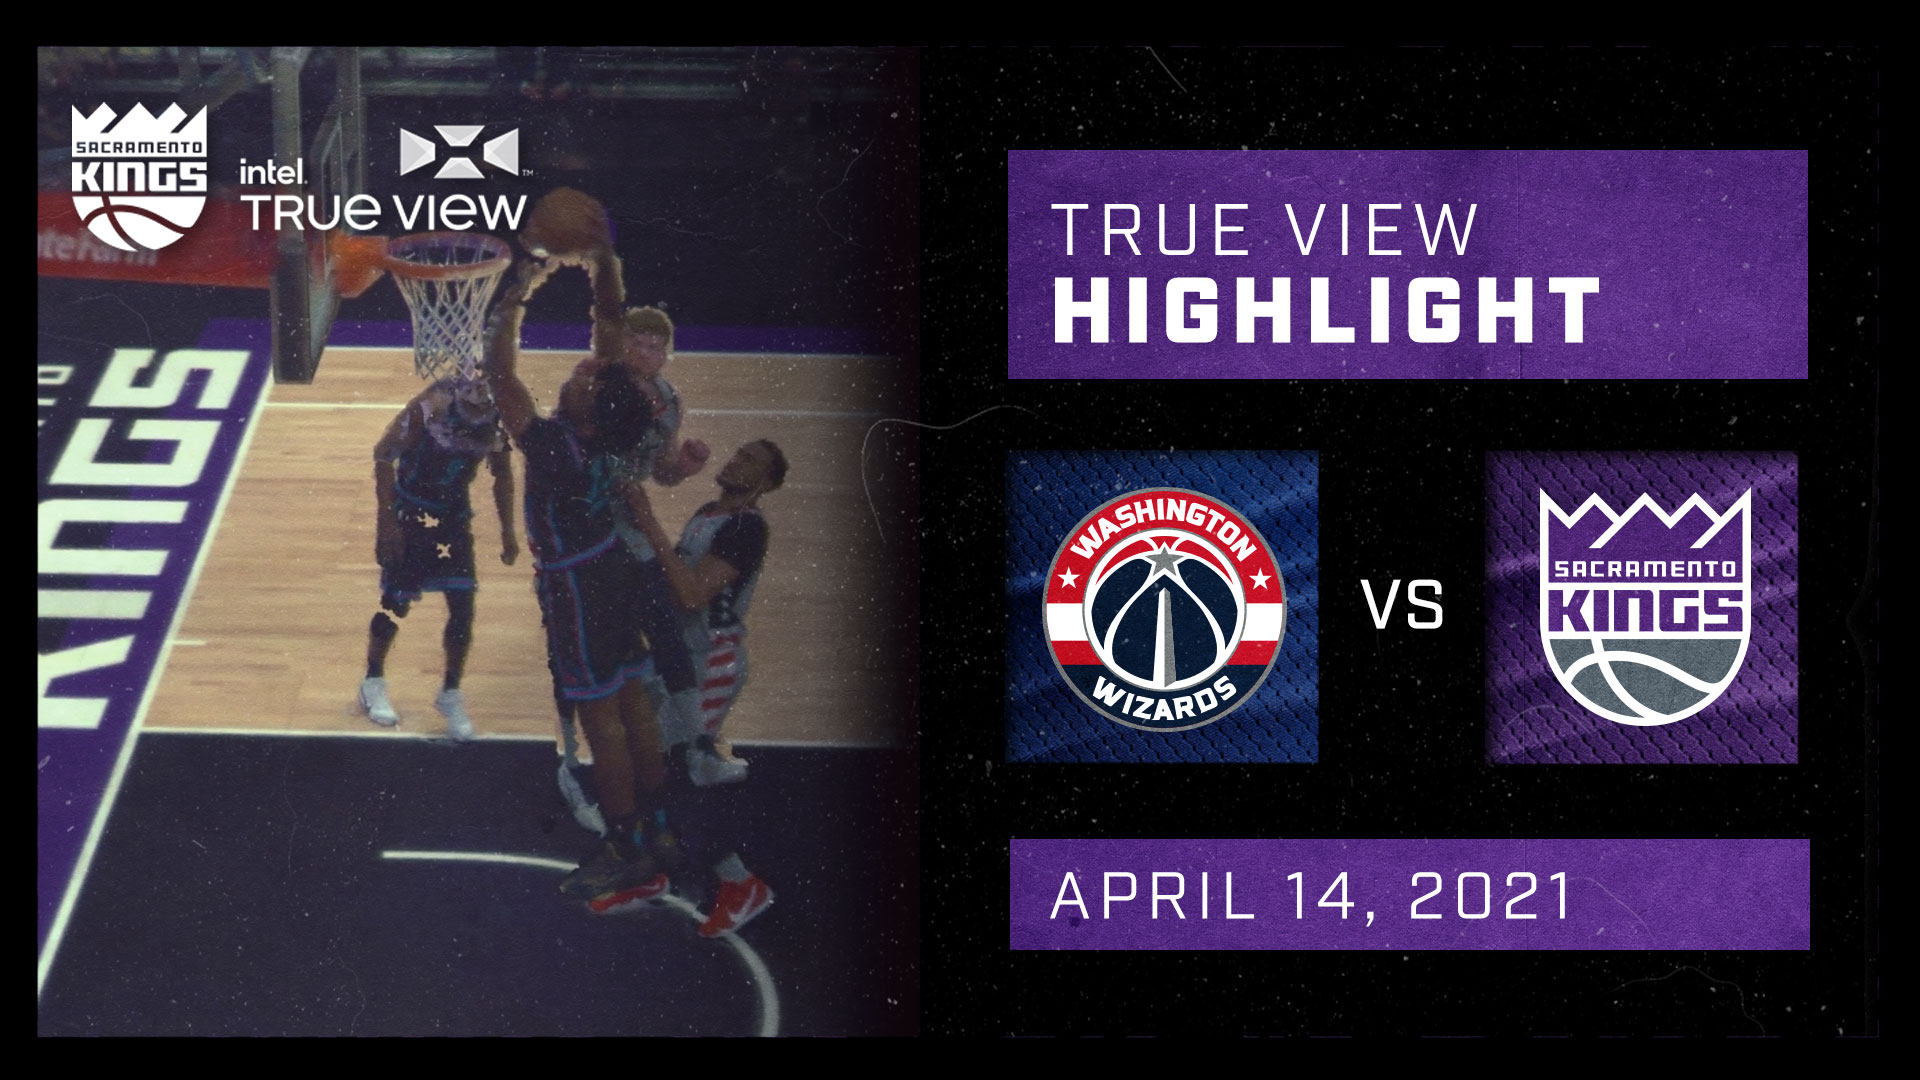 Intel True View Highlight - Jones Dunk vs Wizards 4.14.21